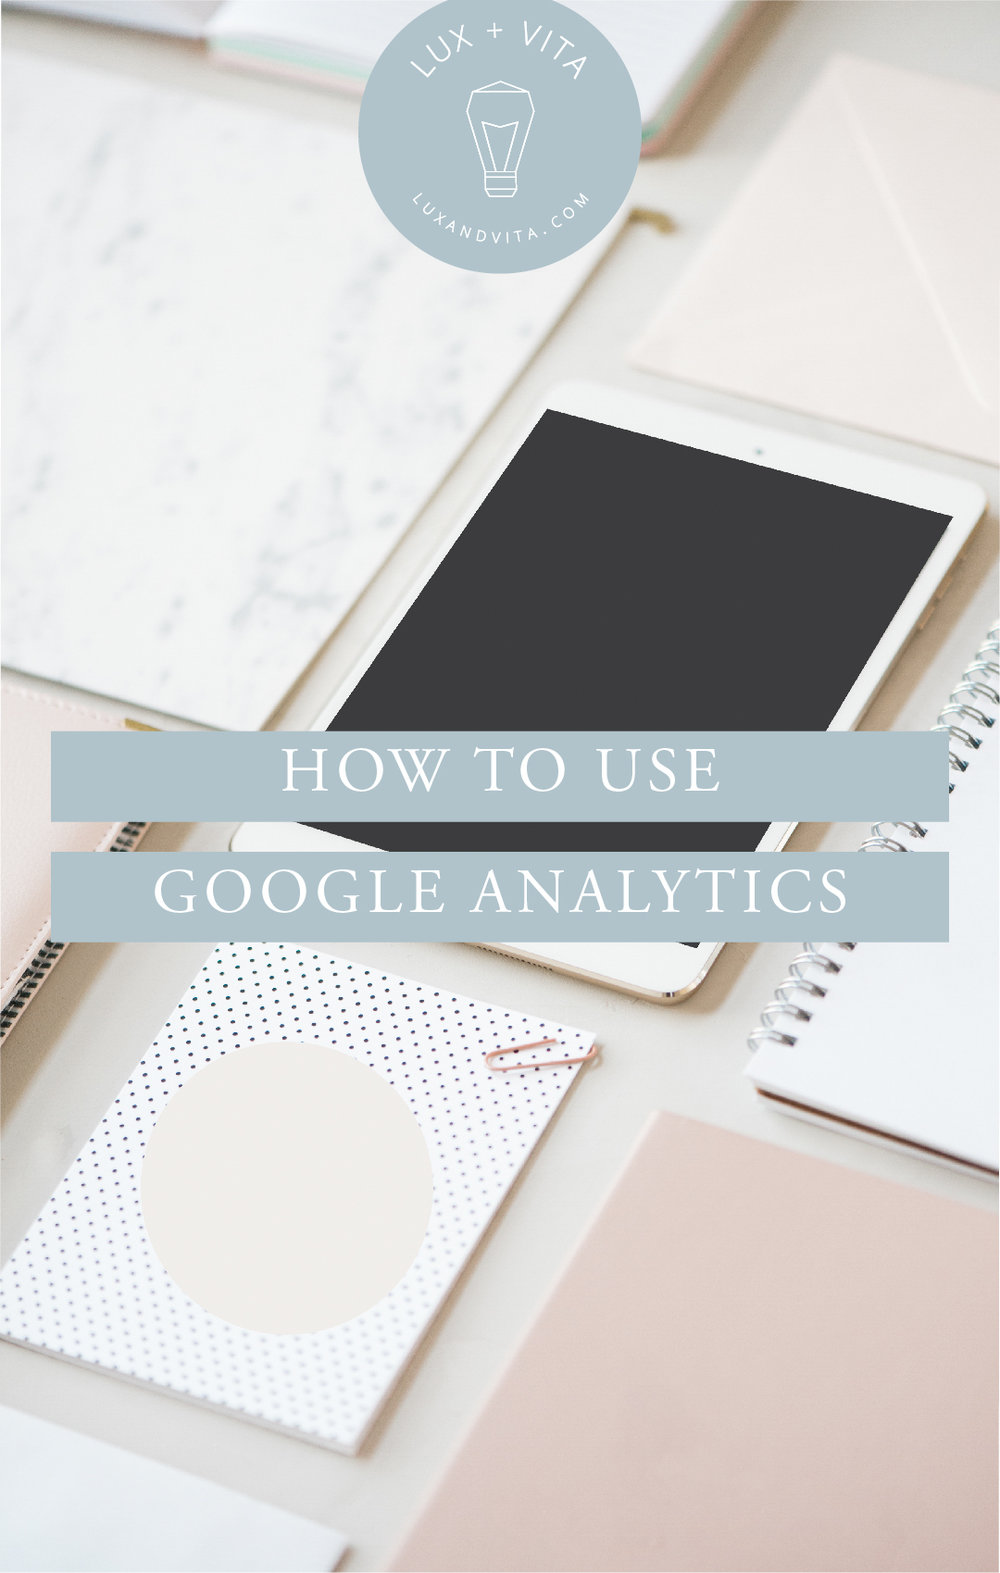 Blog-How-to-use-Google-Analytics_Pinterest-Tall.jpg